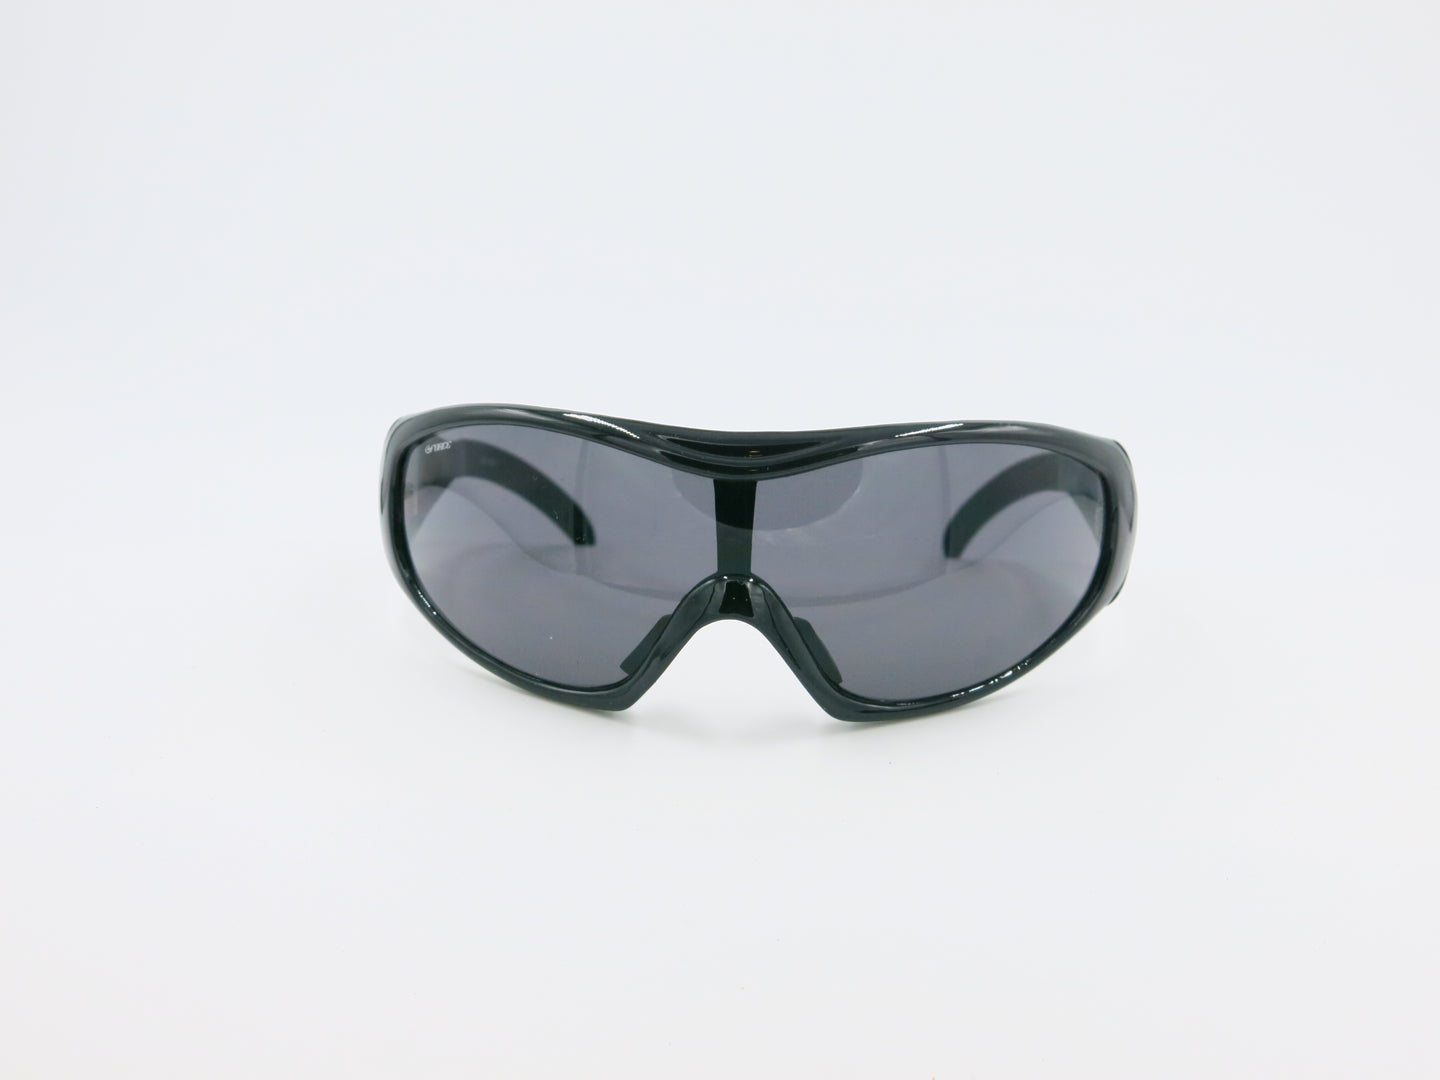 Gargoyles Sunglasses Kinetic | Sunglasses by Gargoyles | Friedman & Sons